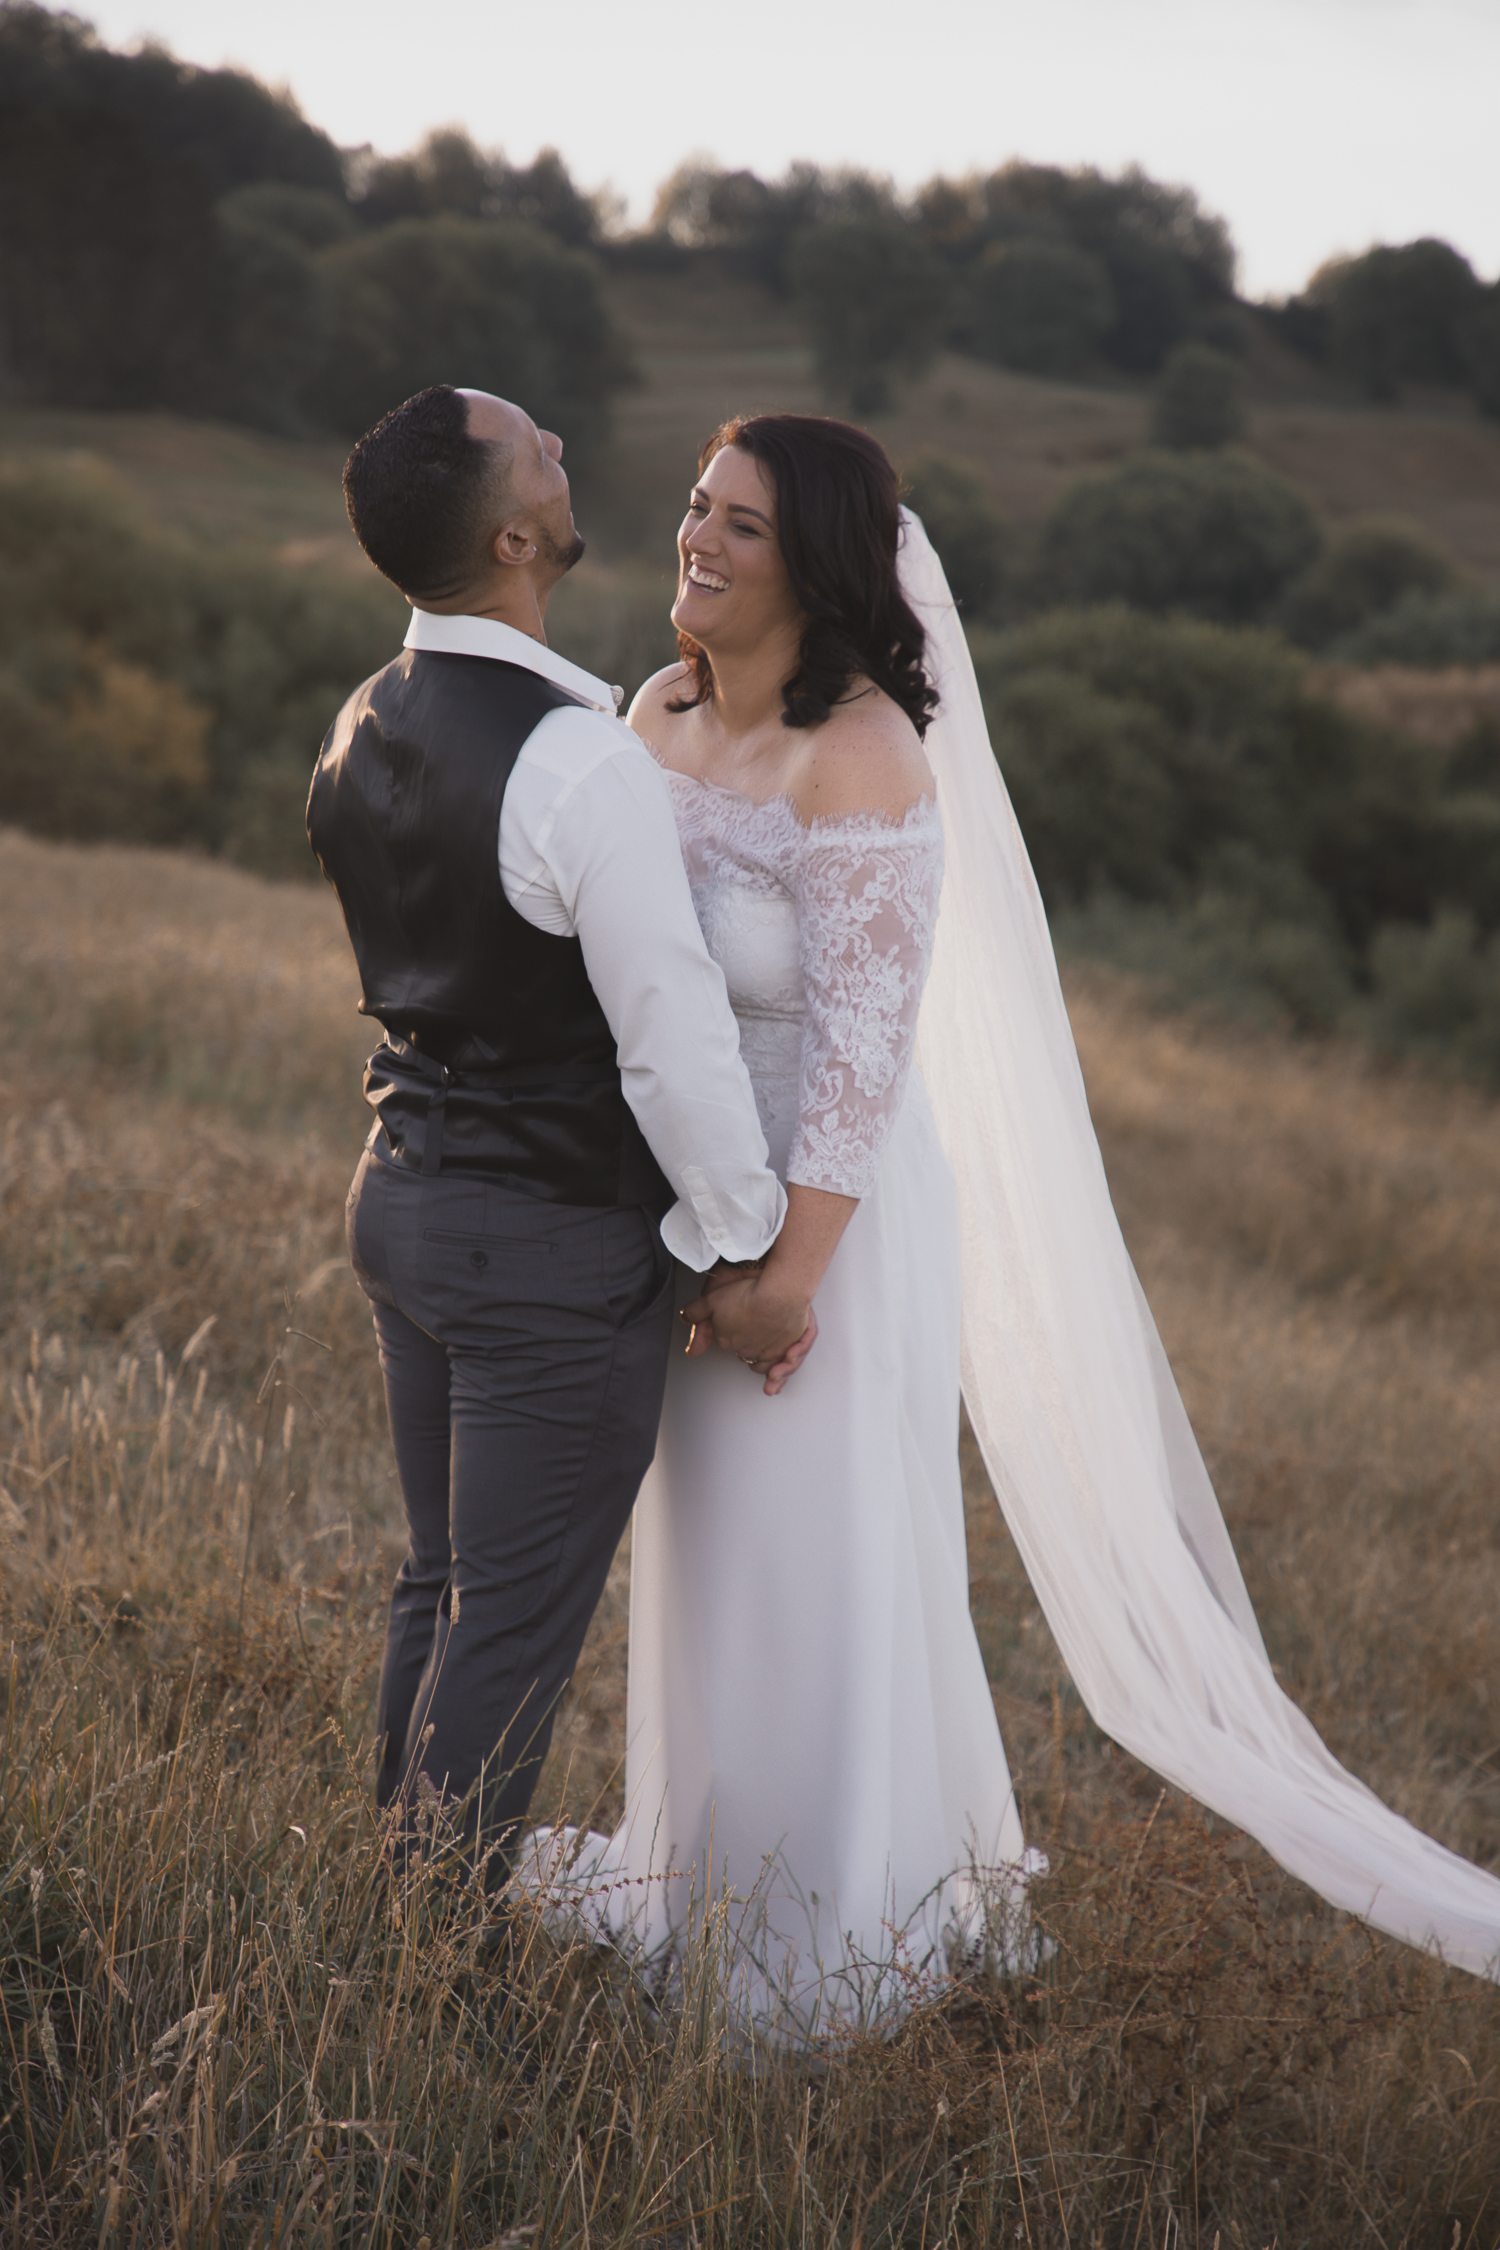 bride and groom laughing together on farm at sunset